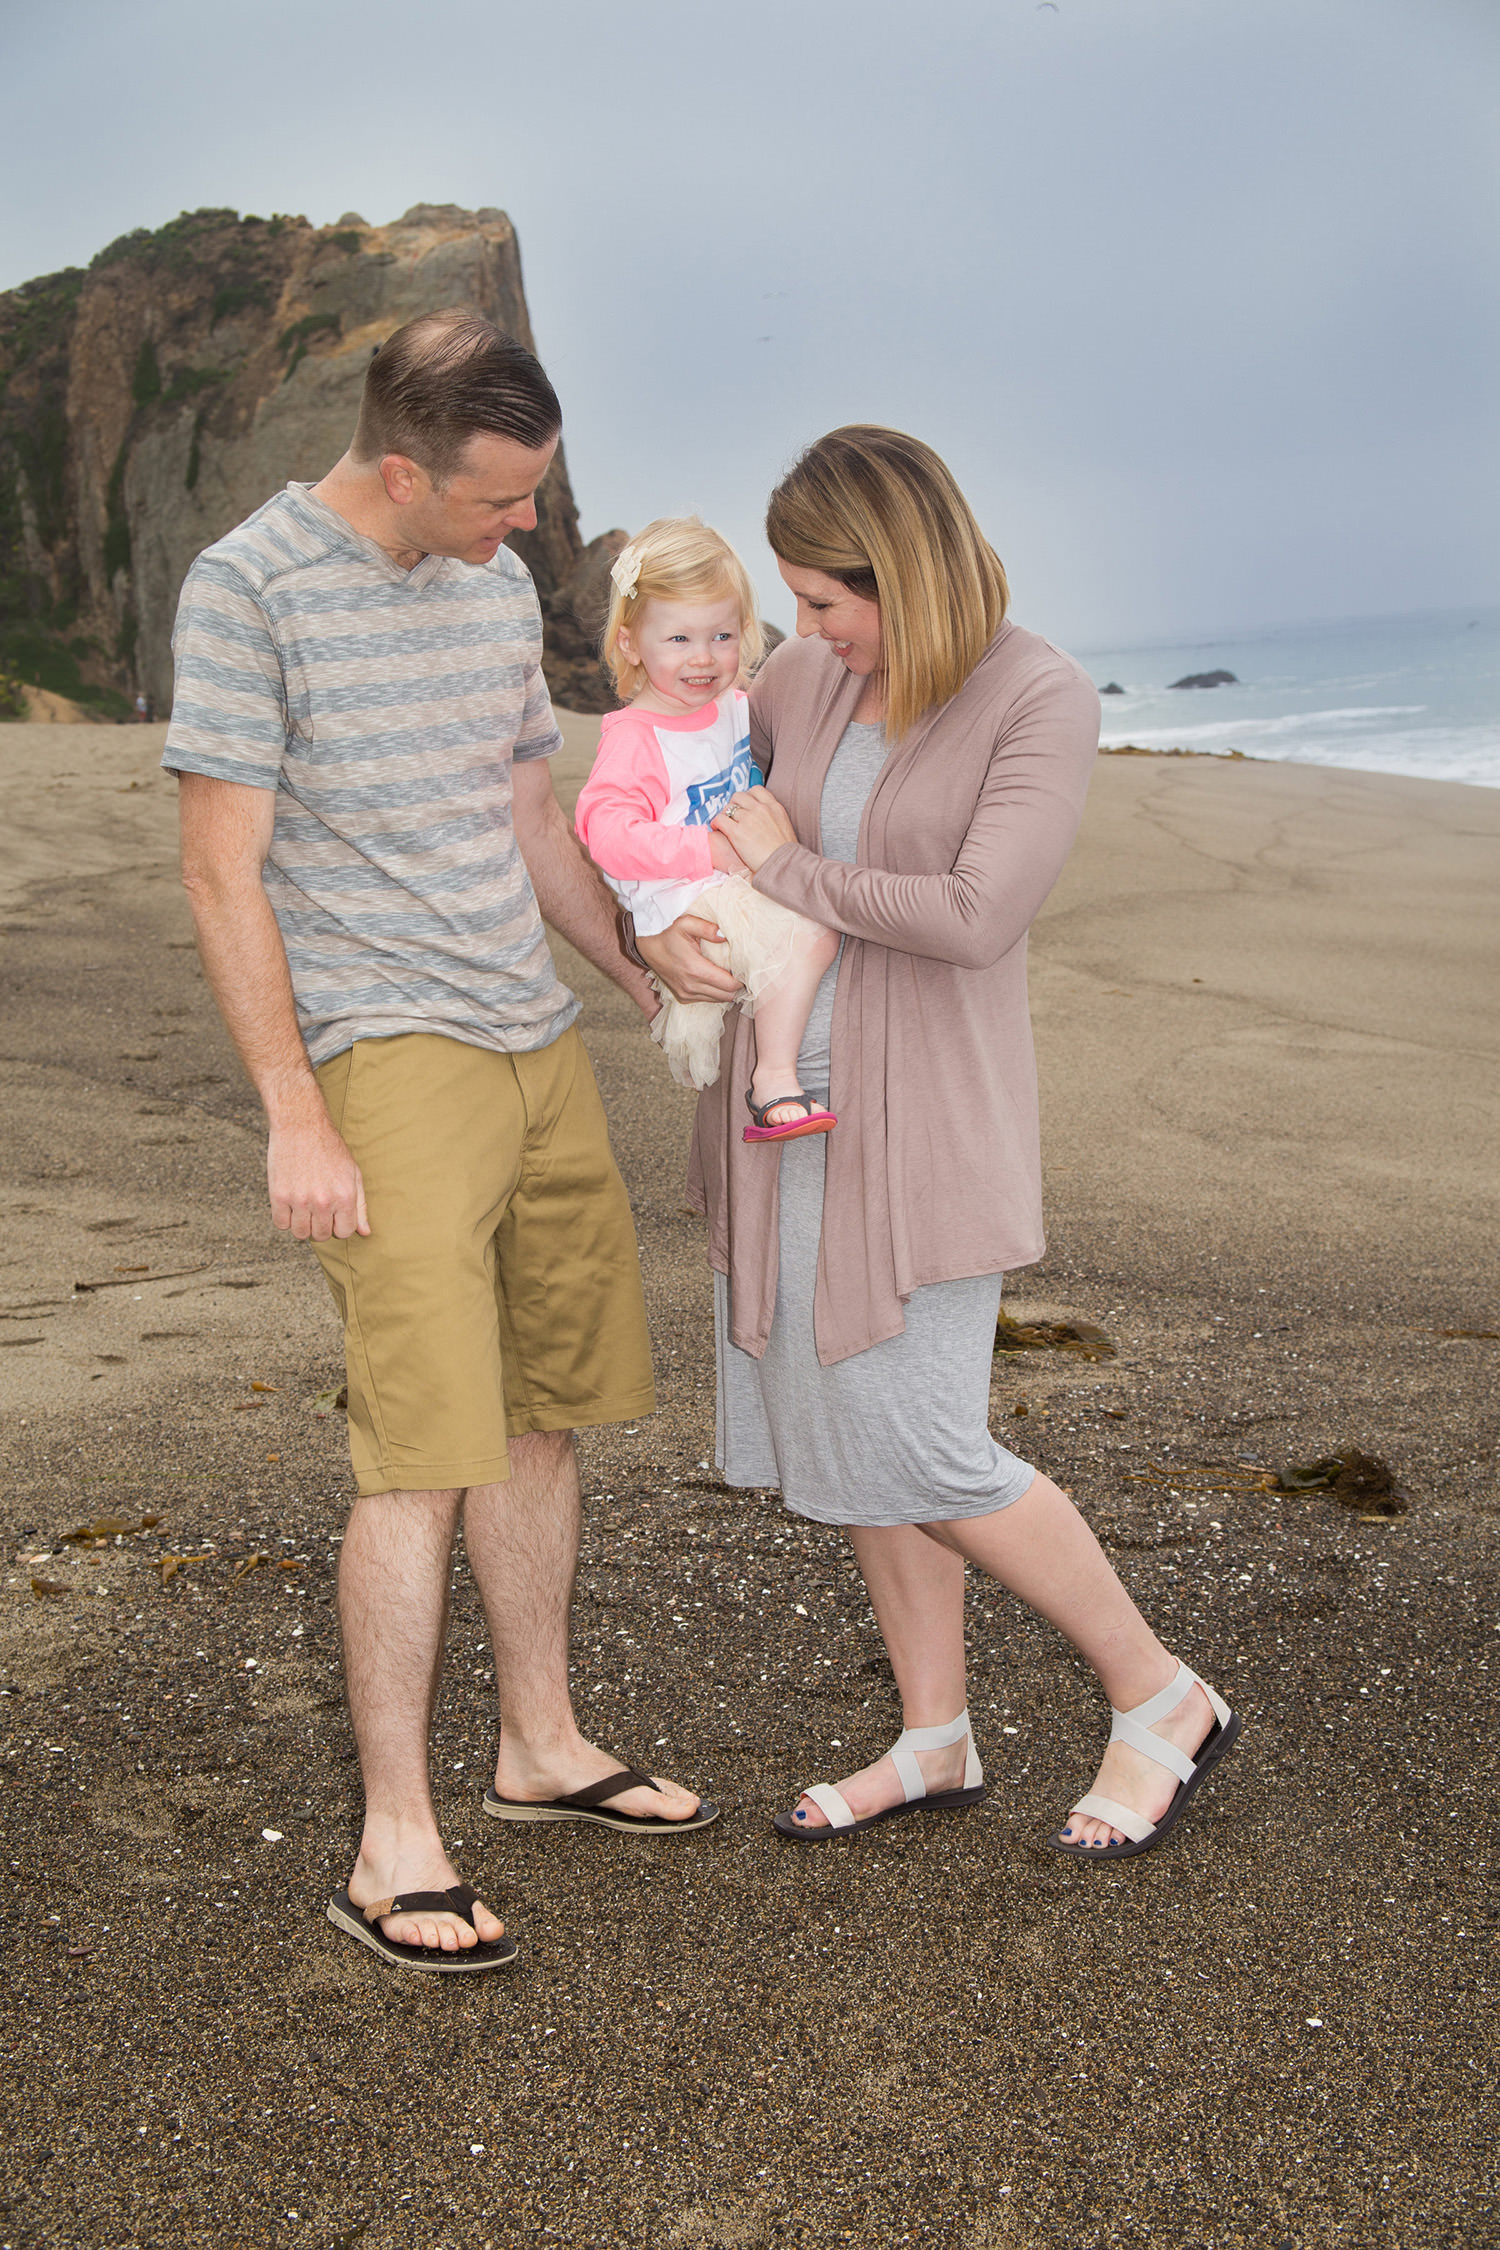 Taking family photos on the beach this year? Then you need these tips!